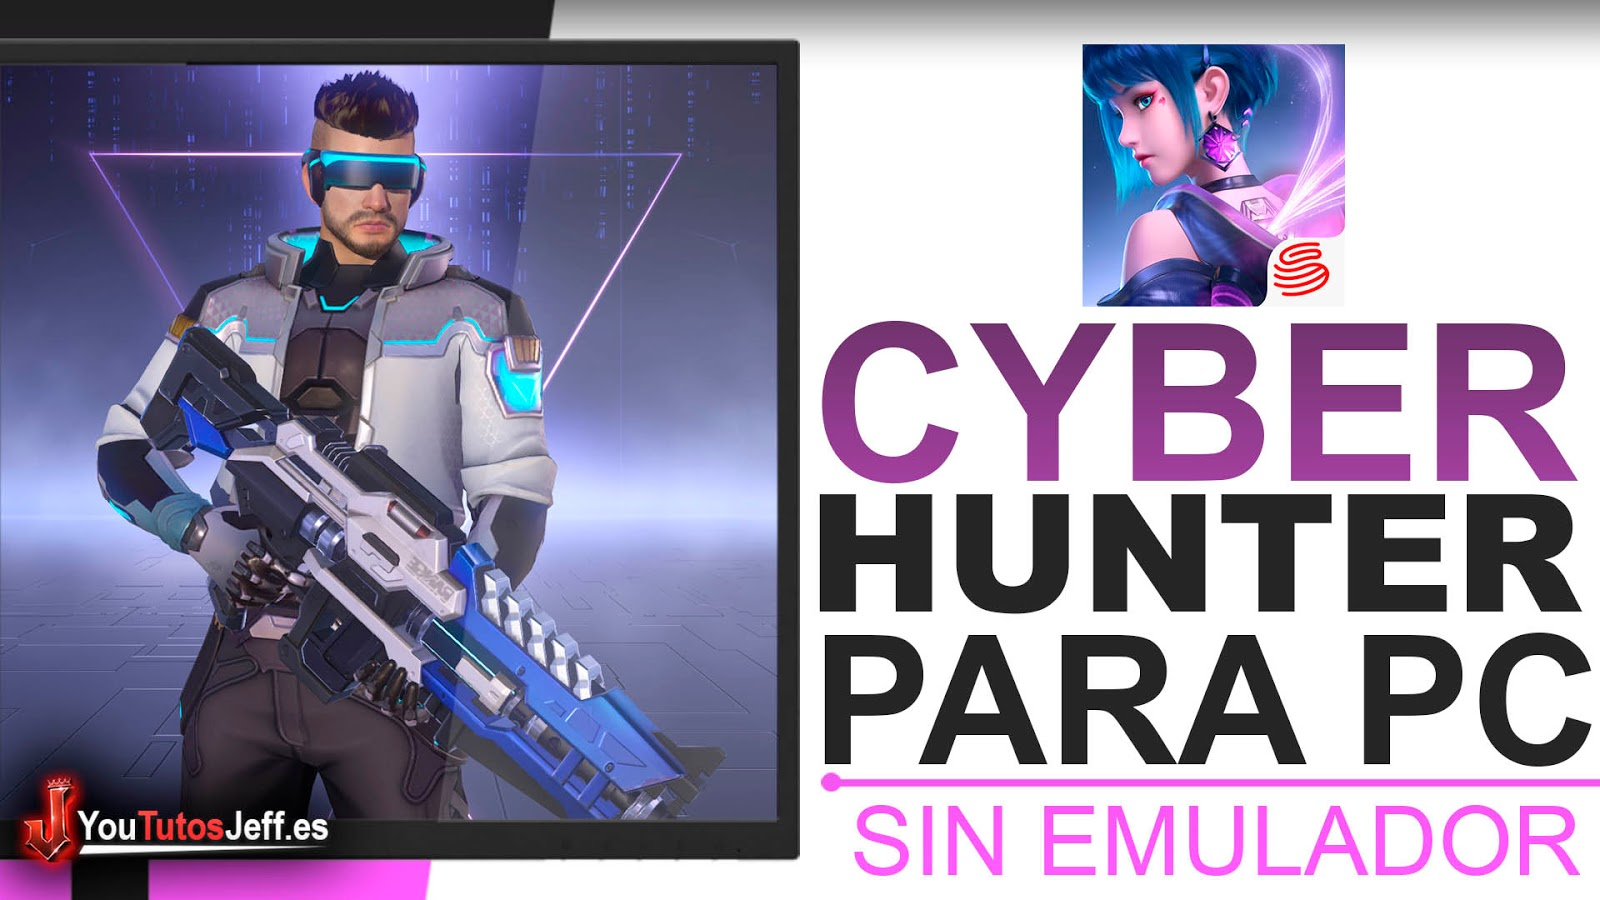 Descargar Cyber Hunter para PC SIN EMULADOR